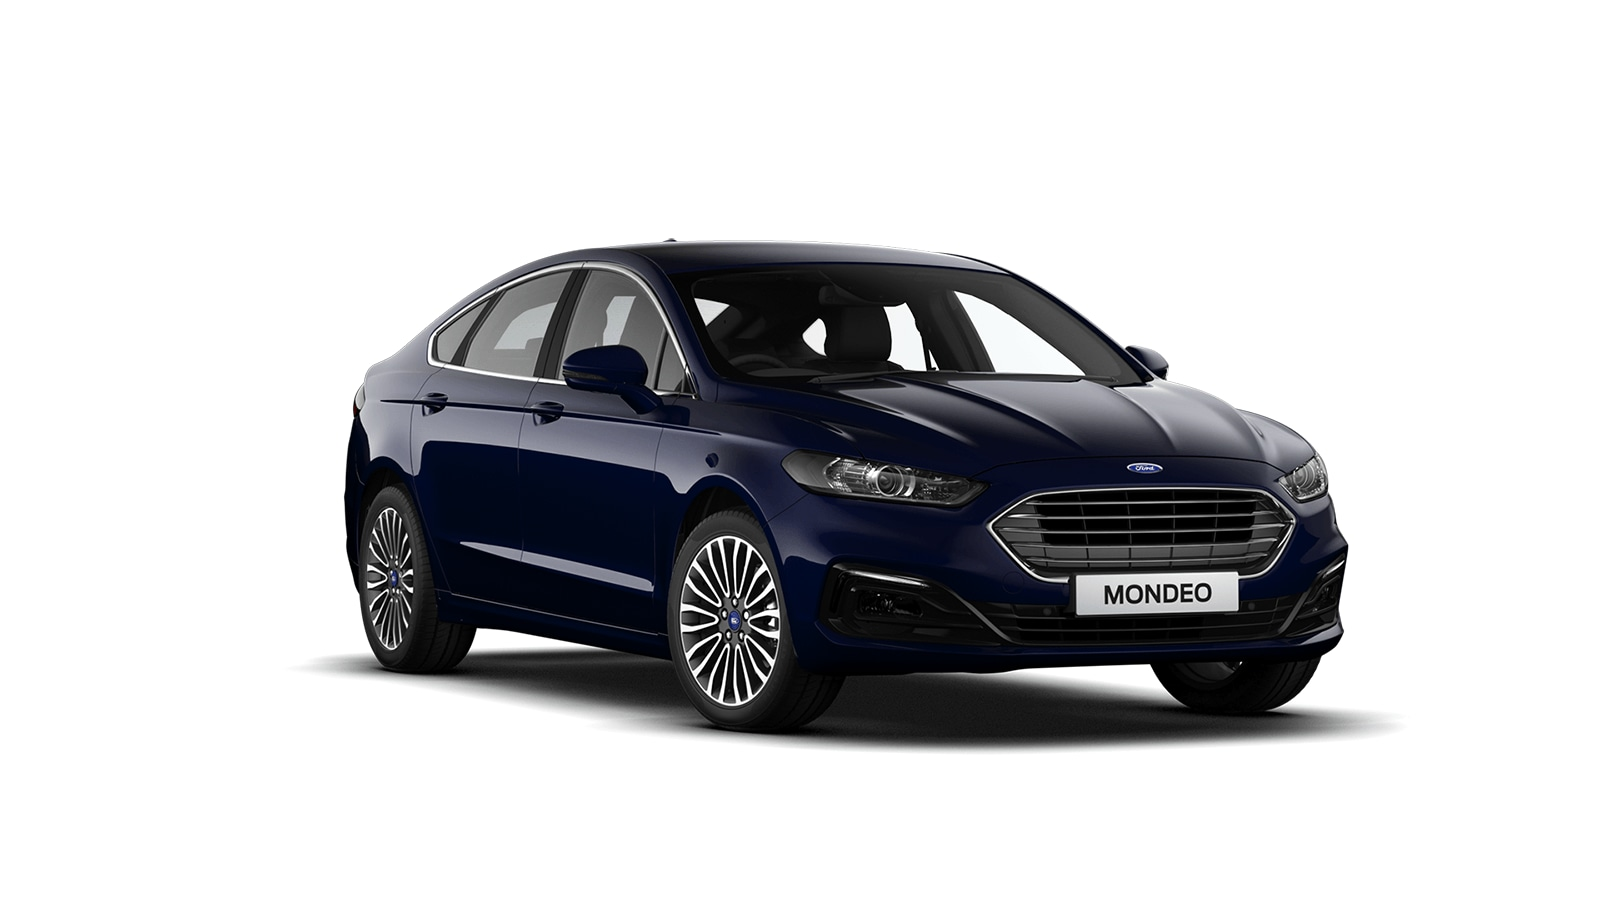 MONDEO Titanium Edition 5 Door in Blazer Blue